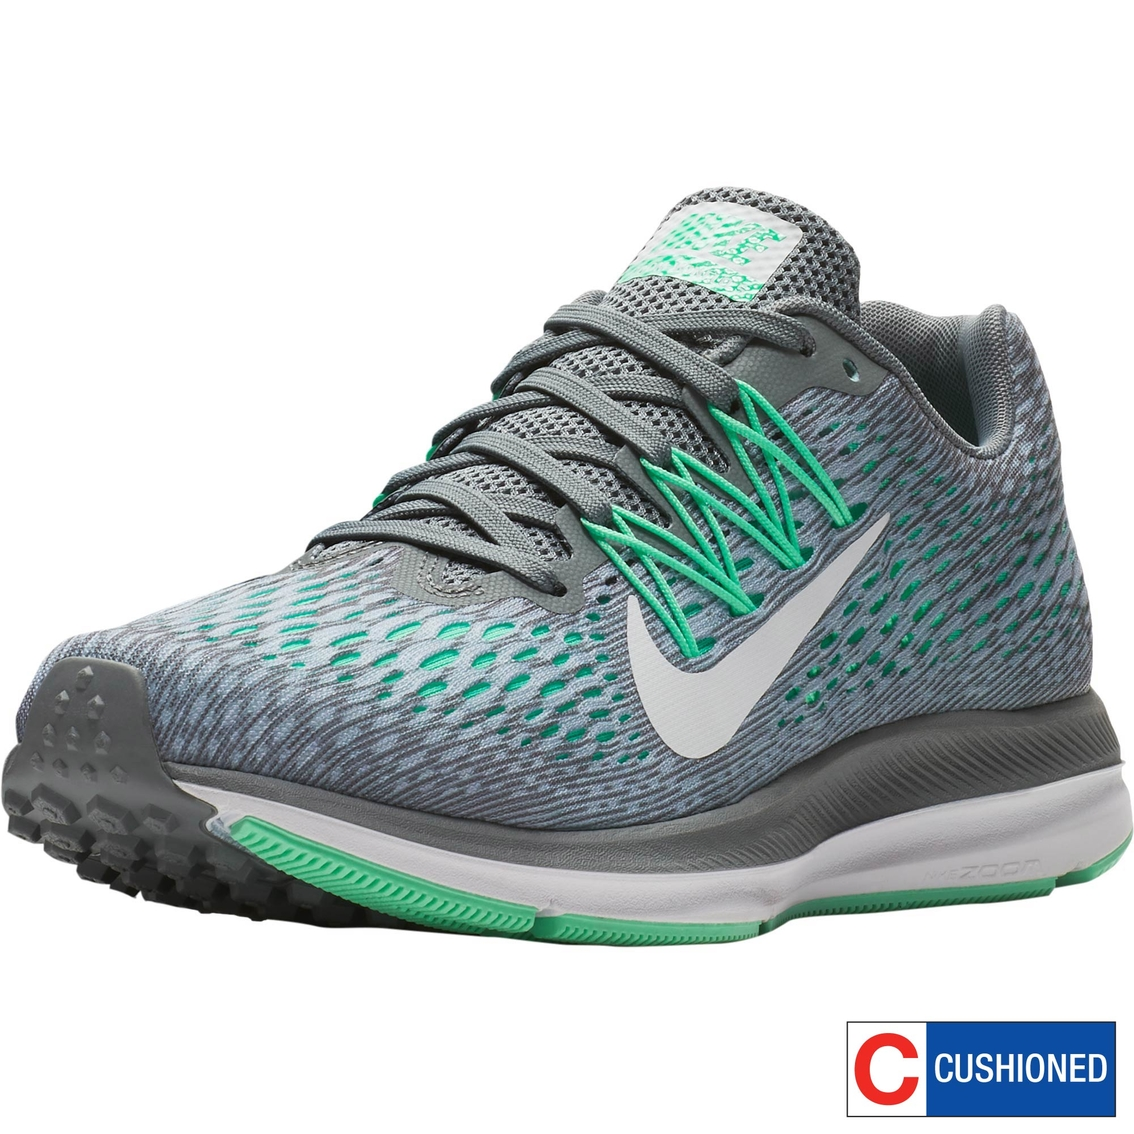 9f877c5a55 Nike Women s Air Zoom Winflo 5 Running Shoes